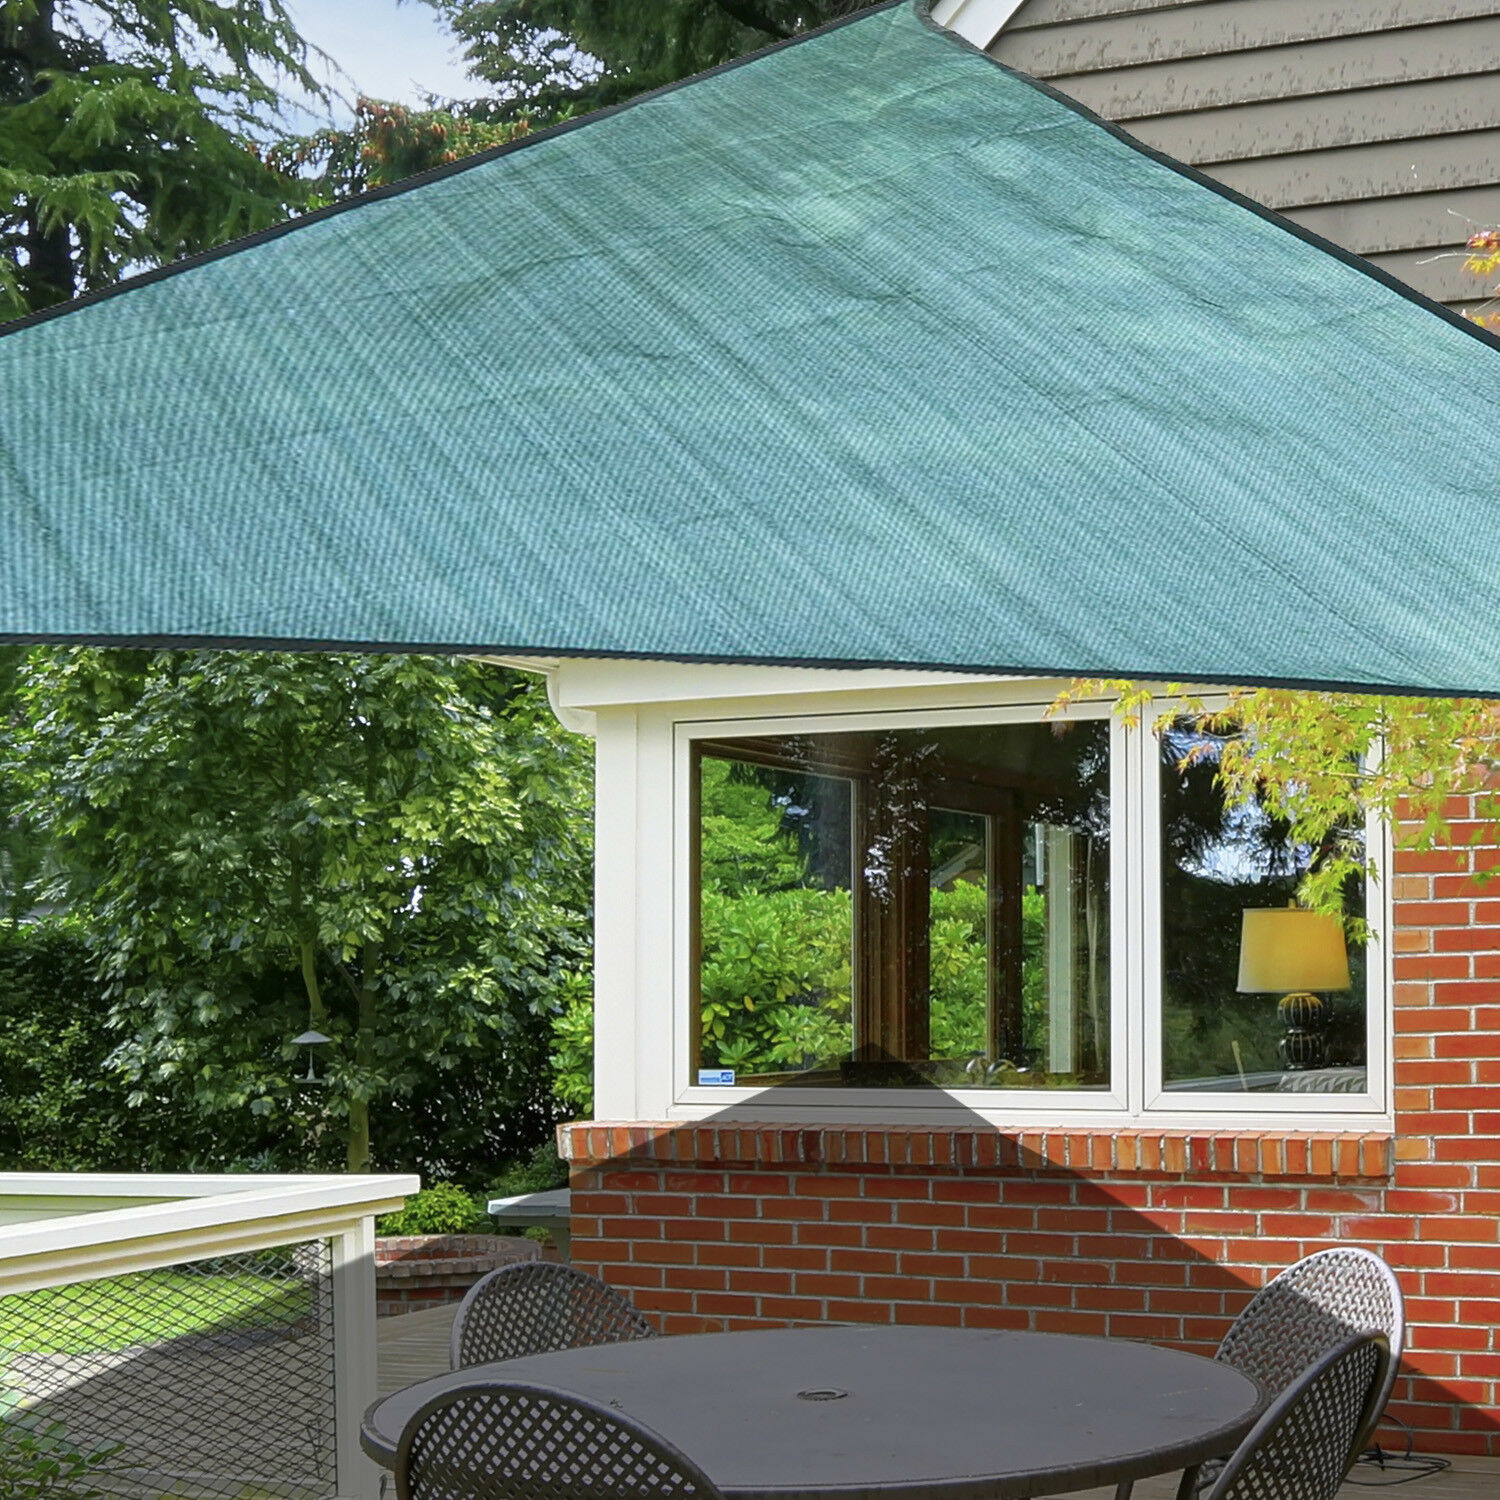 canopy arm window outdoor shelter manual awning drop retractable outsunny sunshade door living